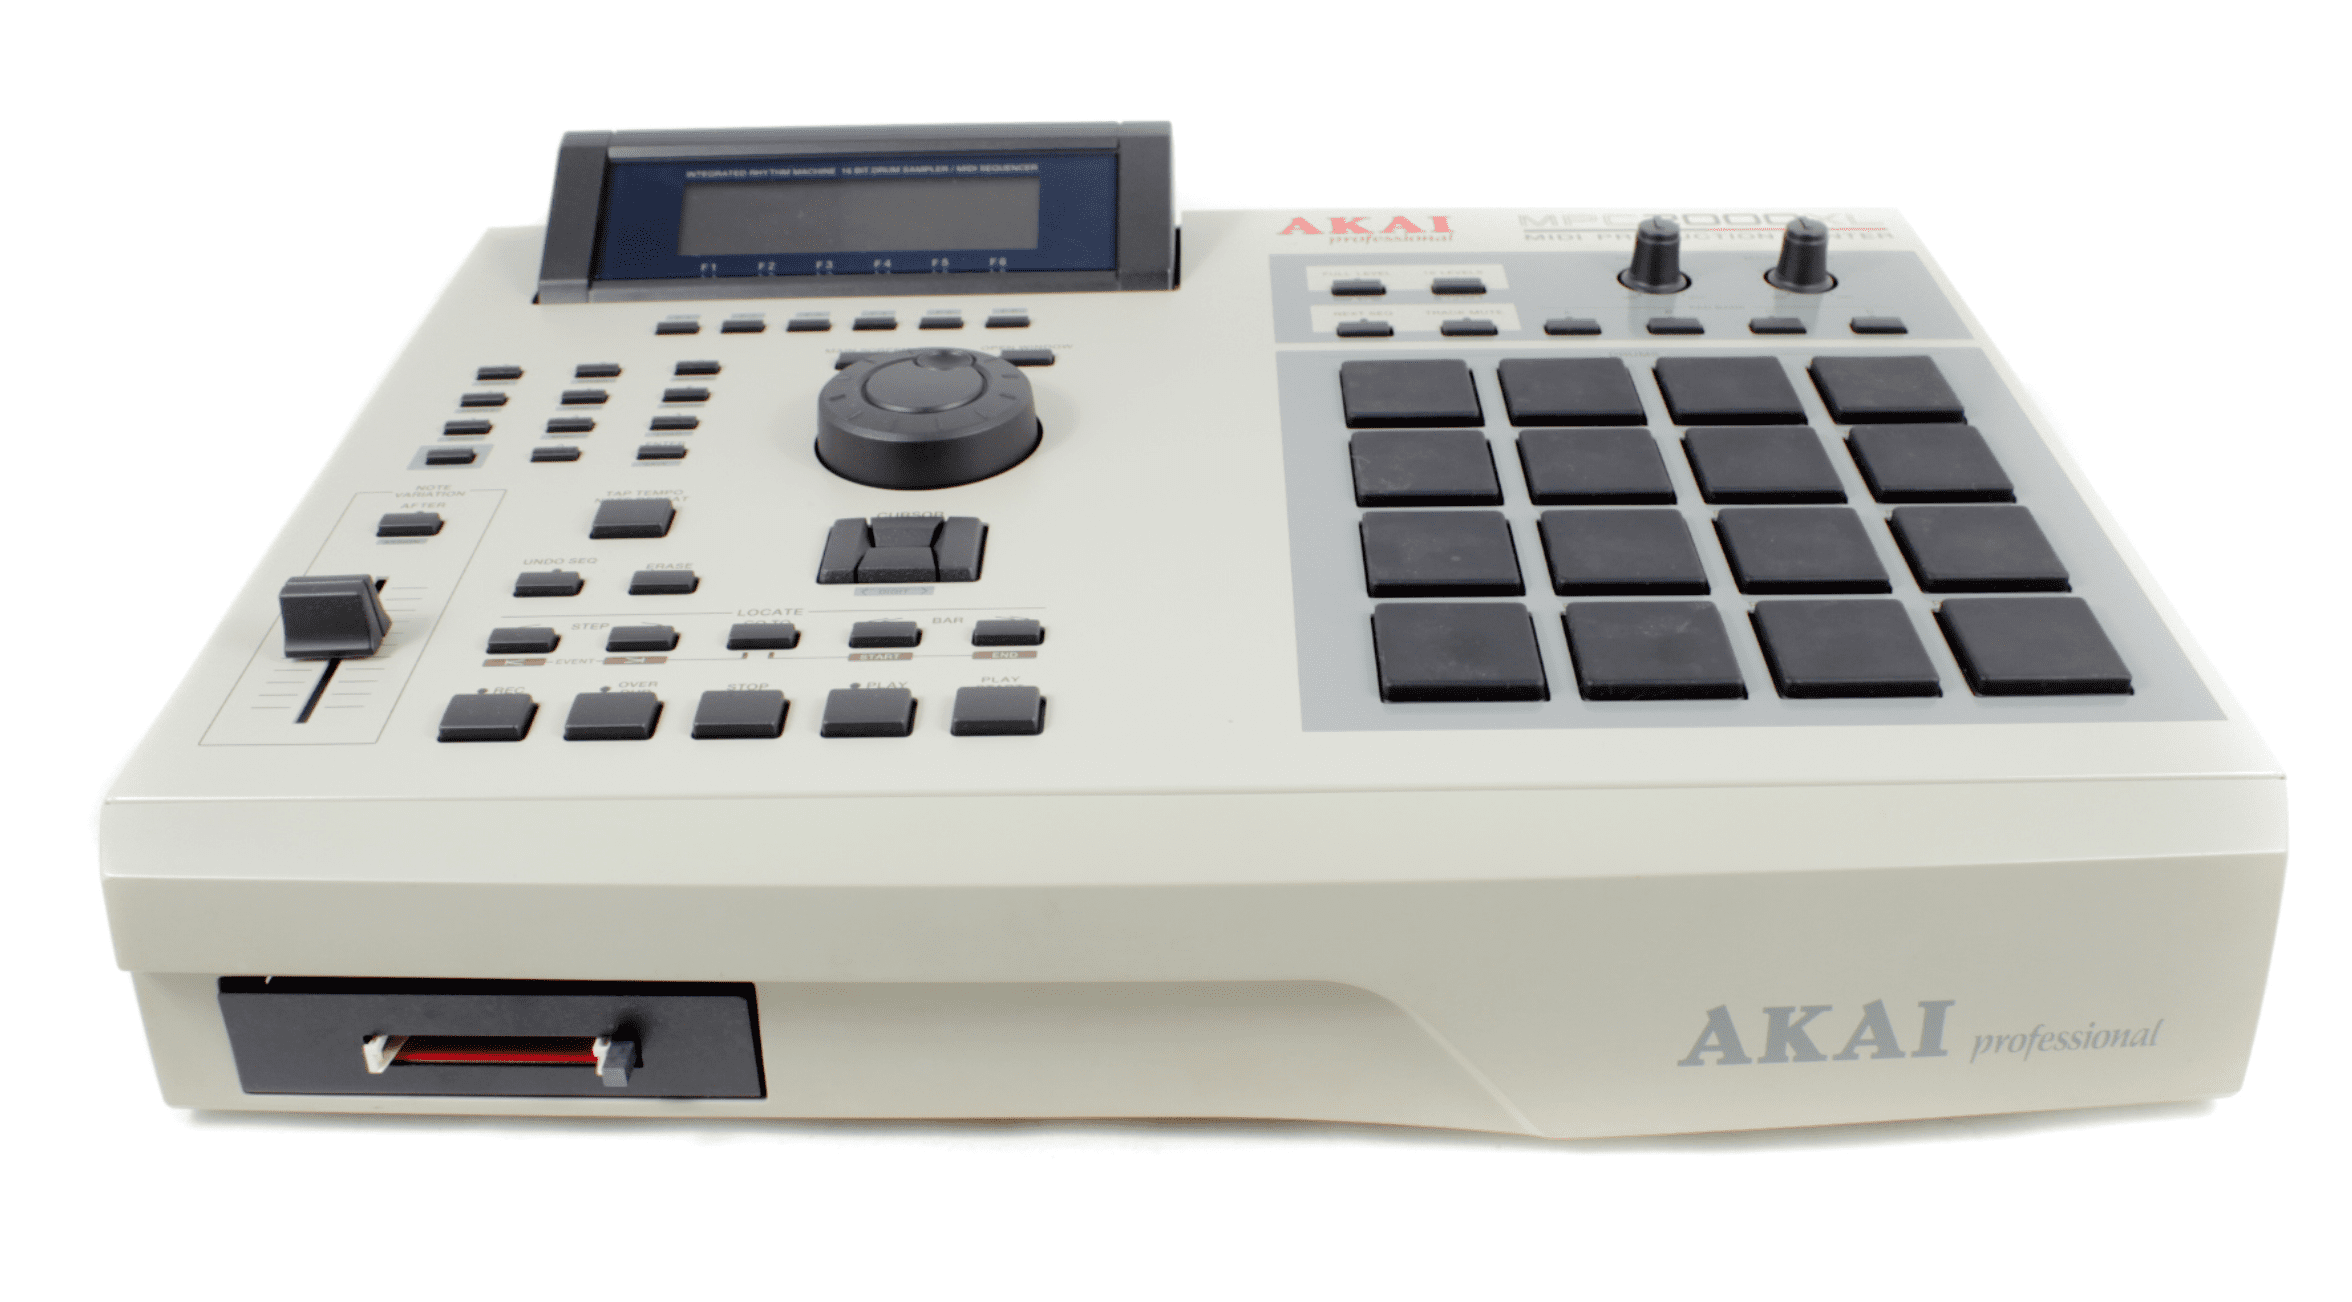 akai mpc2000 midi production center essay Results 1 - 48 of 217  new listingakai mpc 2000xl sampler sequencer 32mb, 8 outputs  akai mpc  2000 xl sampler sequencer midi production center zip.